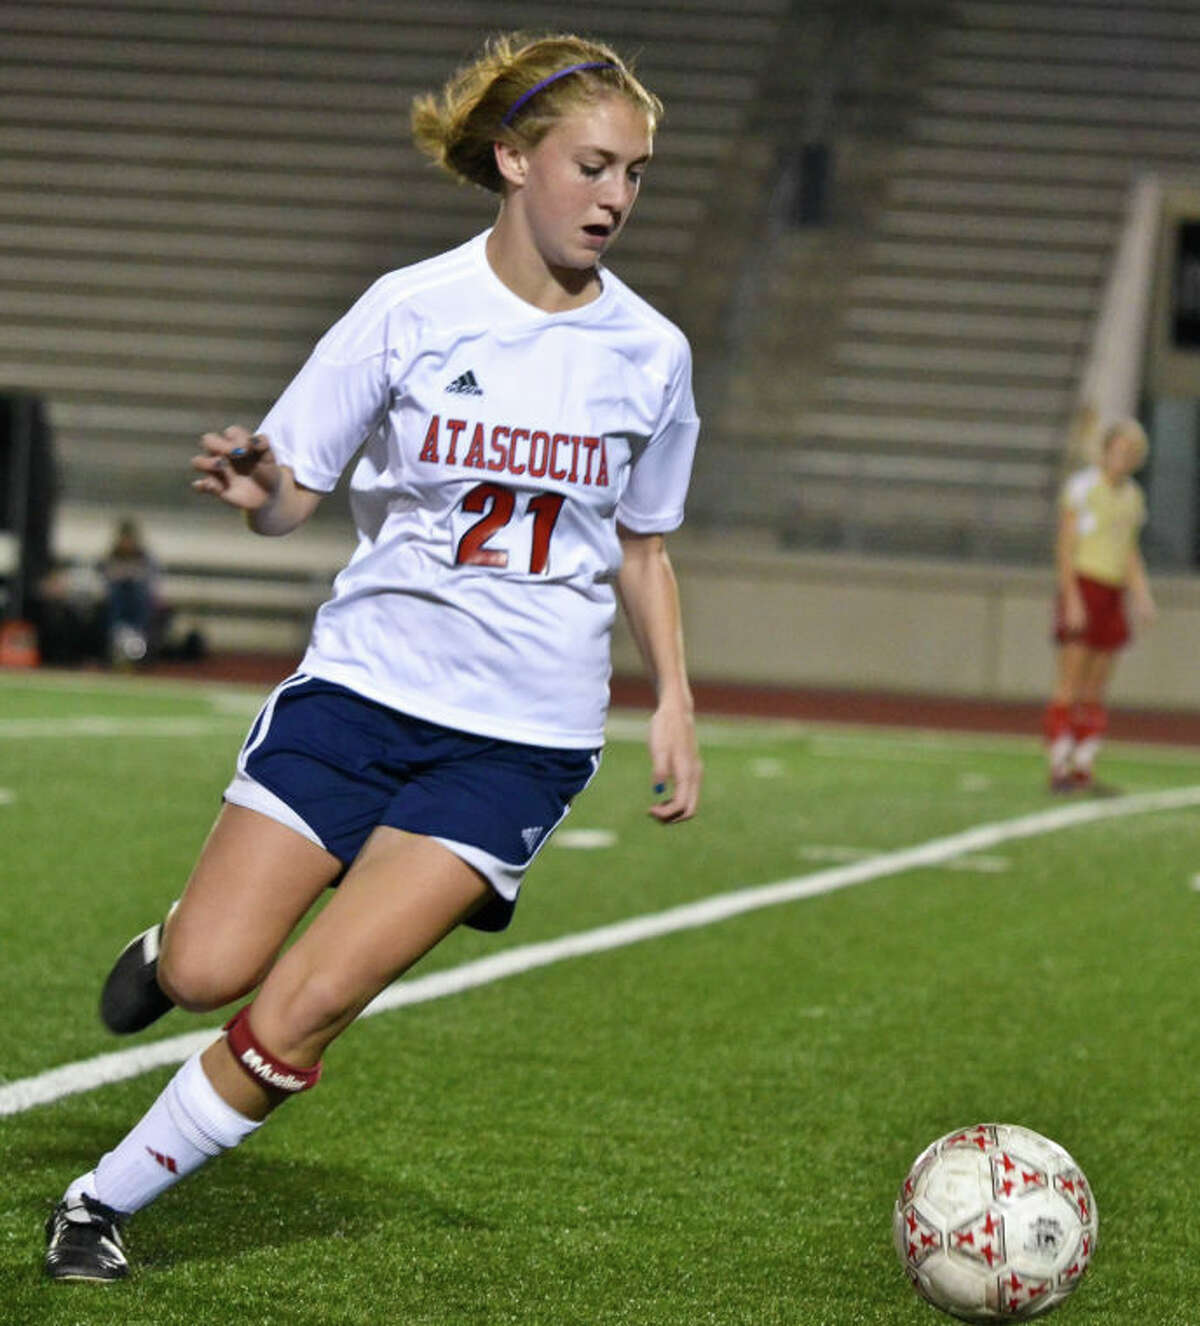 Hannah Hearn dribbles near the sideline during the first half of Atascocita's 2-1 loss to Cy Woods in an opening-round match at the Humble ISD Women's Soccer Invitational on Jan. 10.